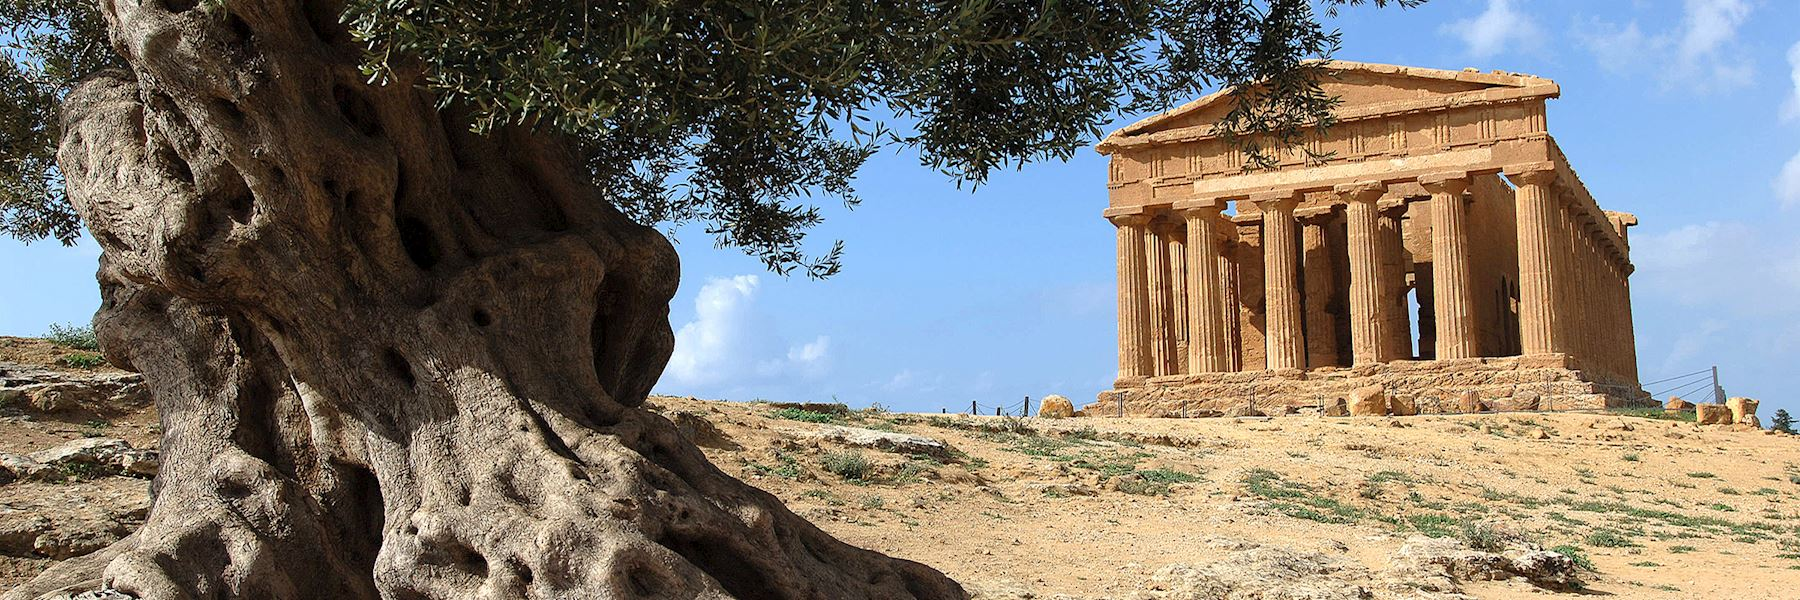 Agrigento: Valley of the Temples tour